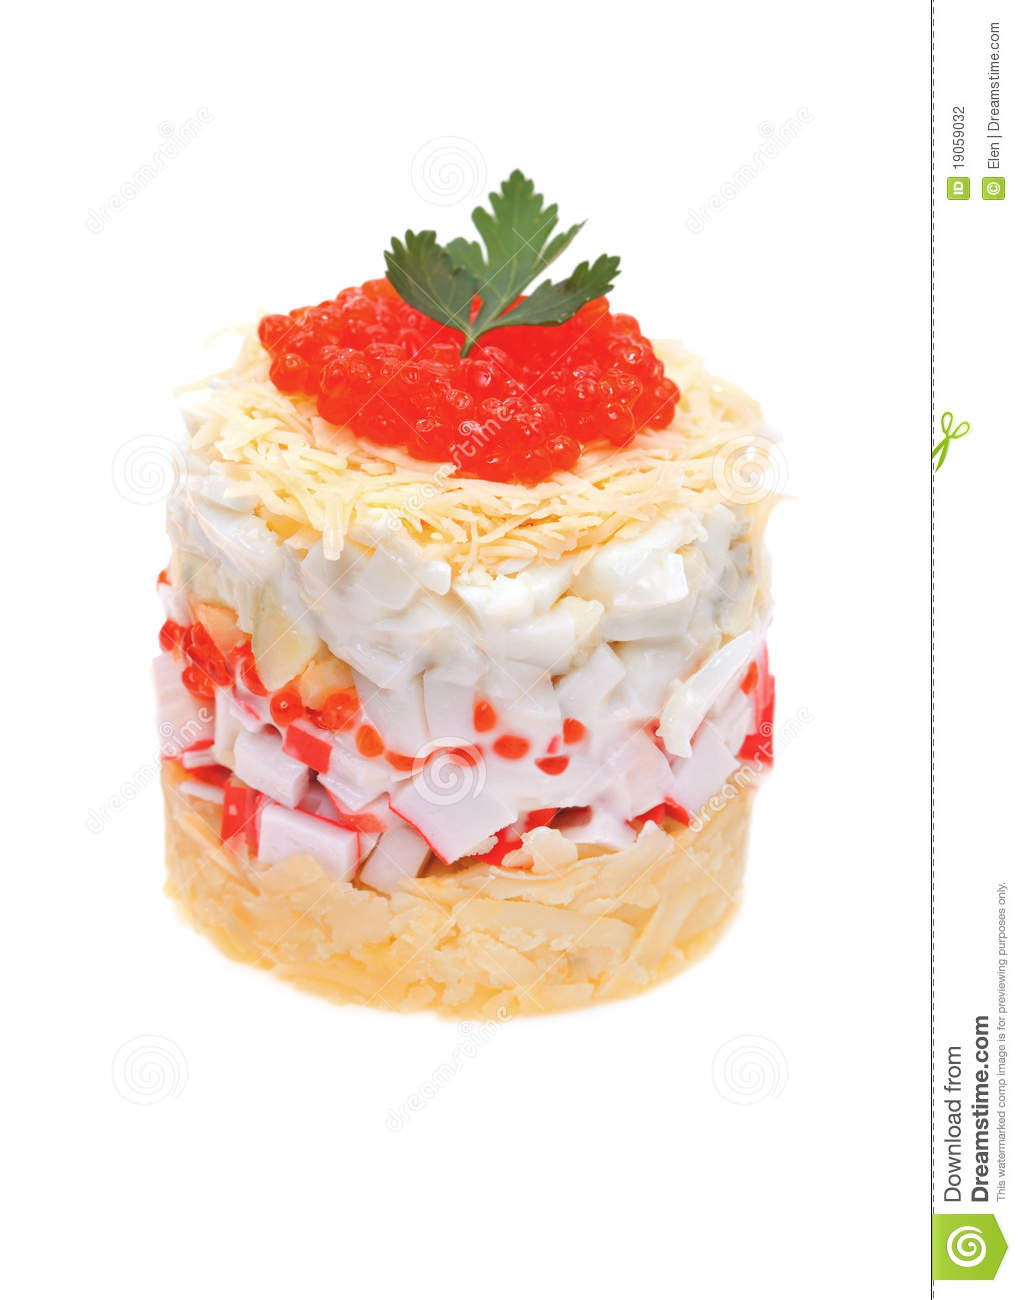 Download Salad Of Crabs With Red Caviar Stock Photo - Image of light, flavor: 19059032